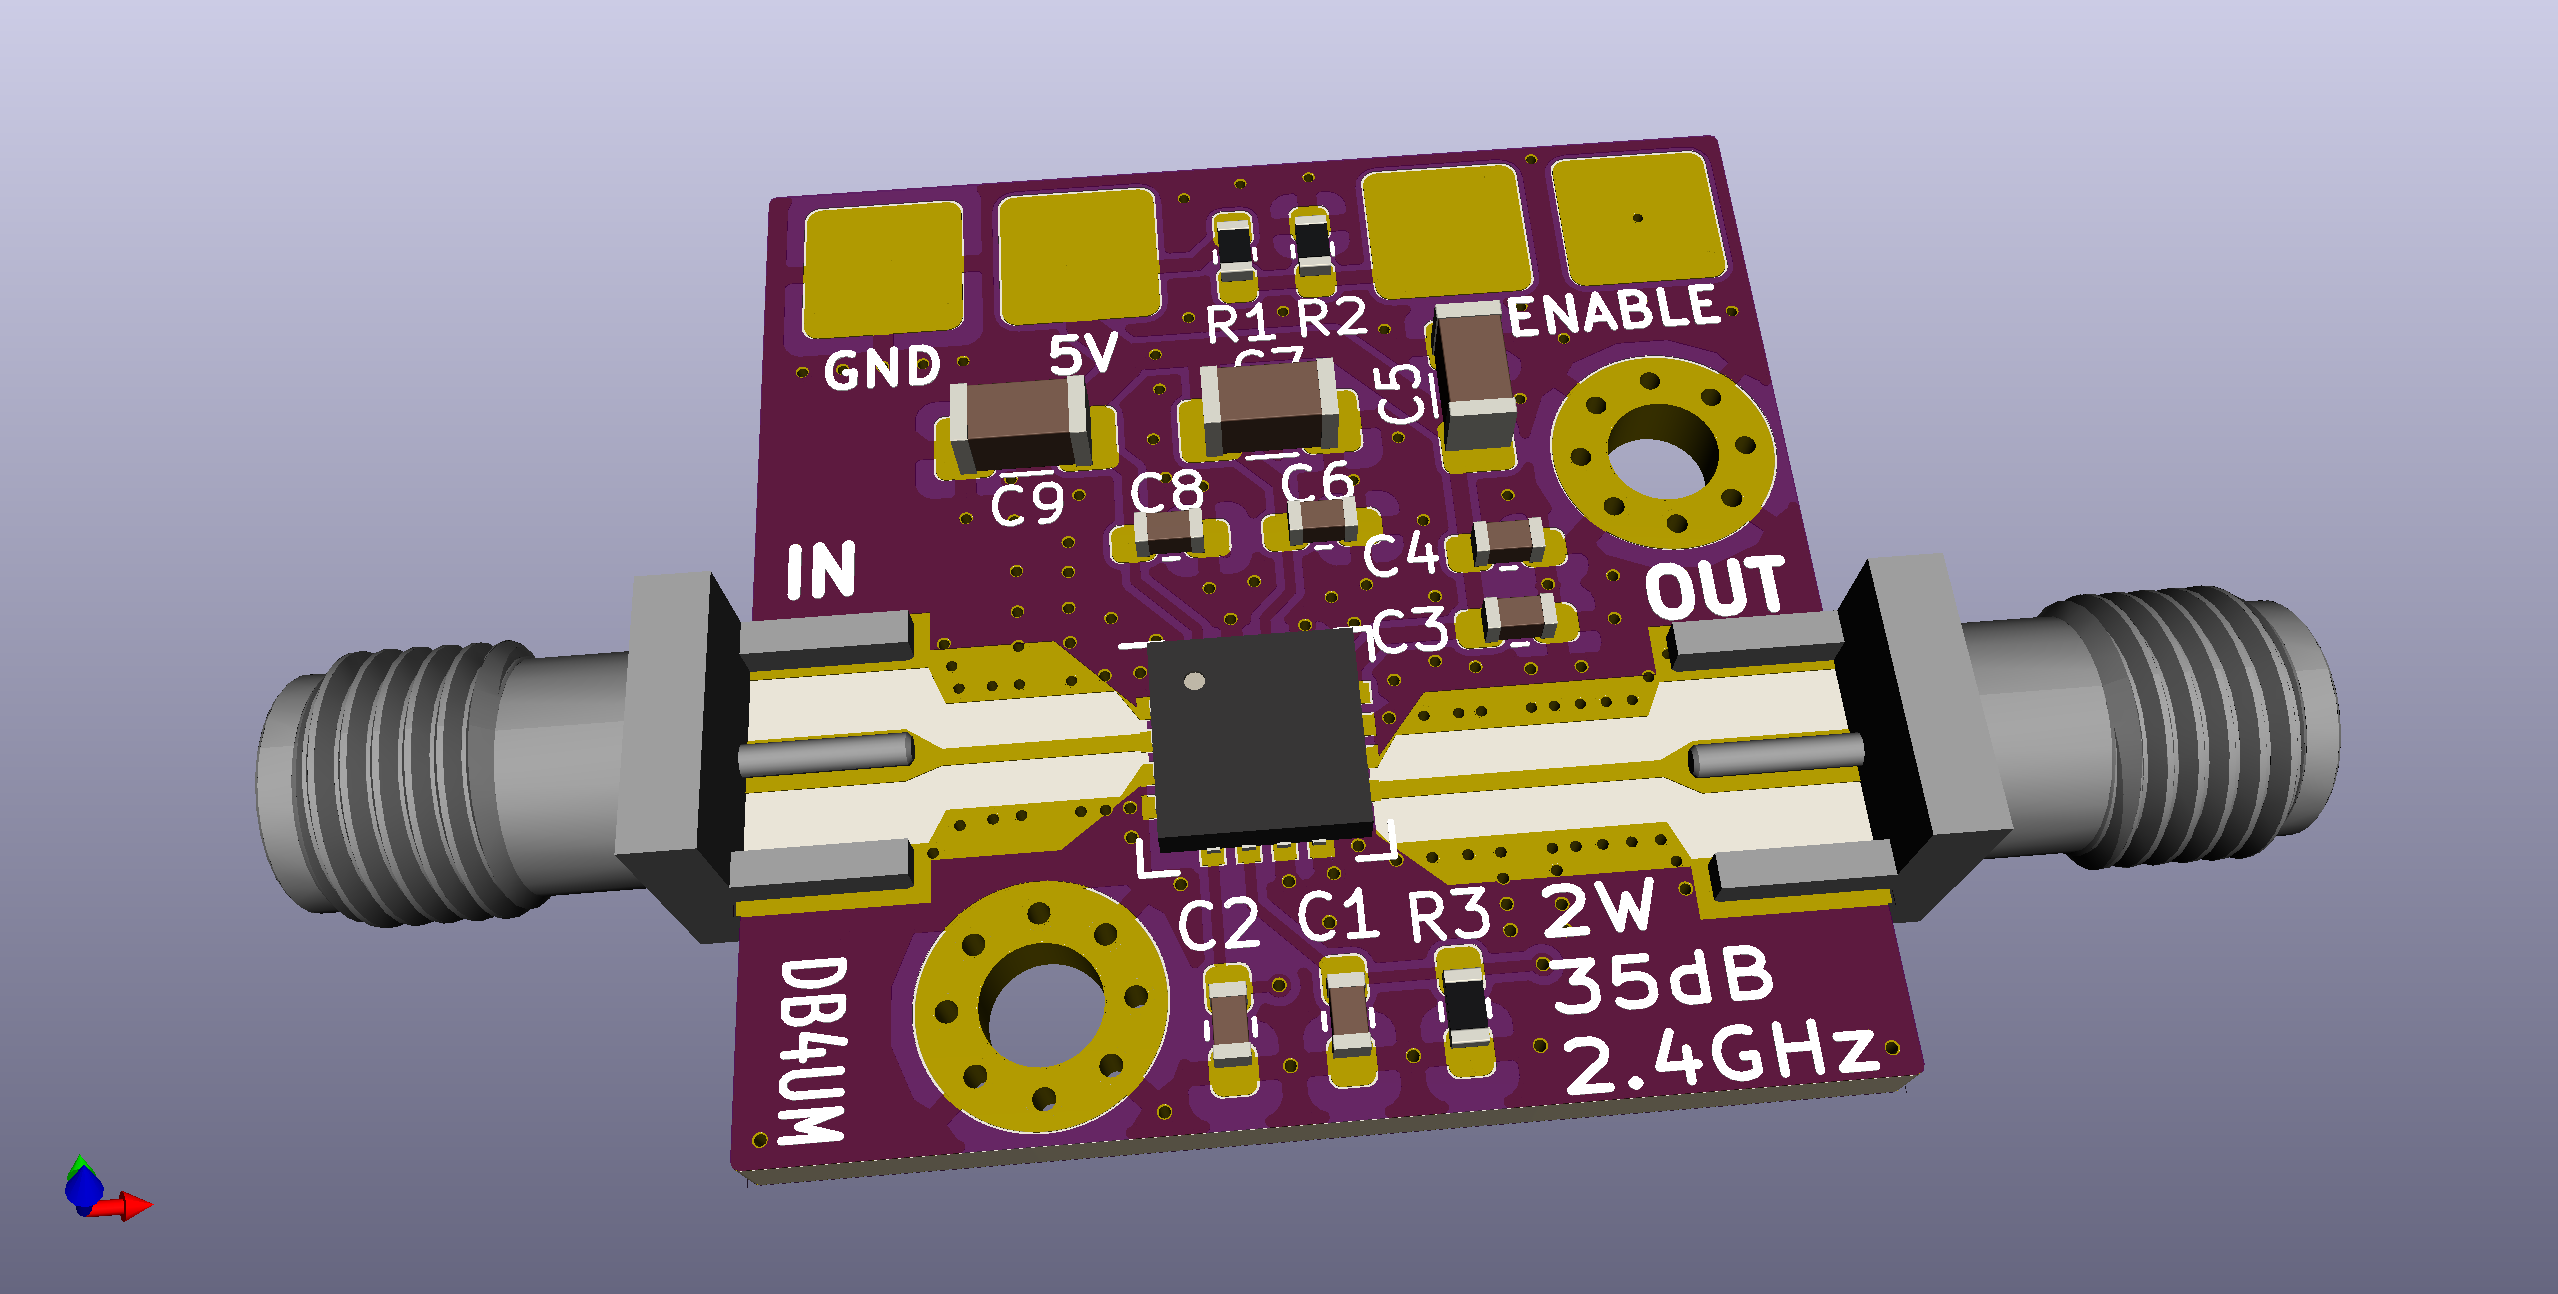 3D rendering of the PCB